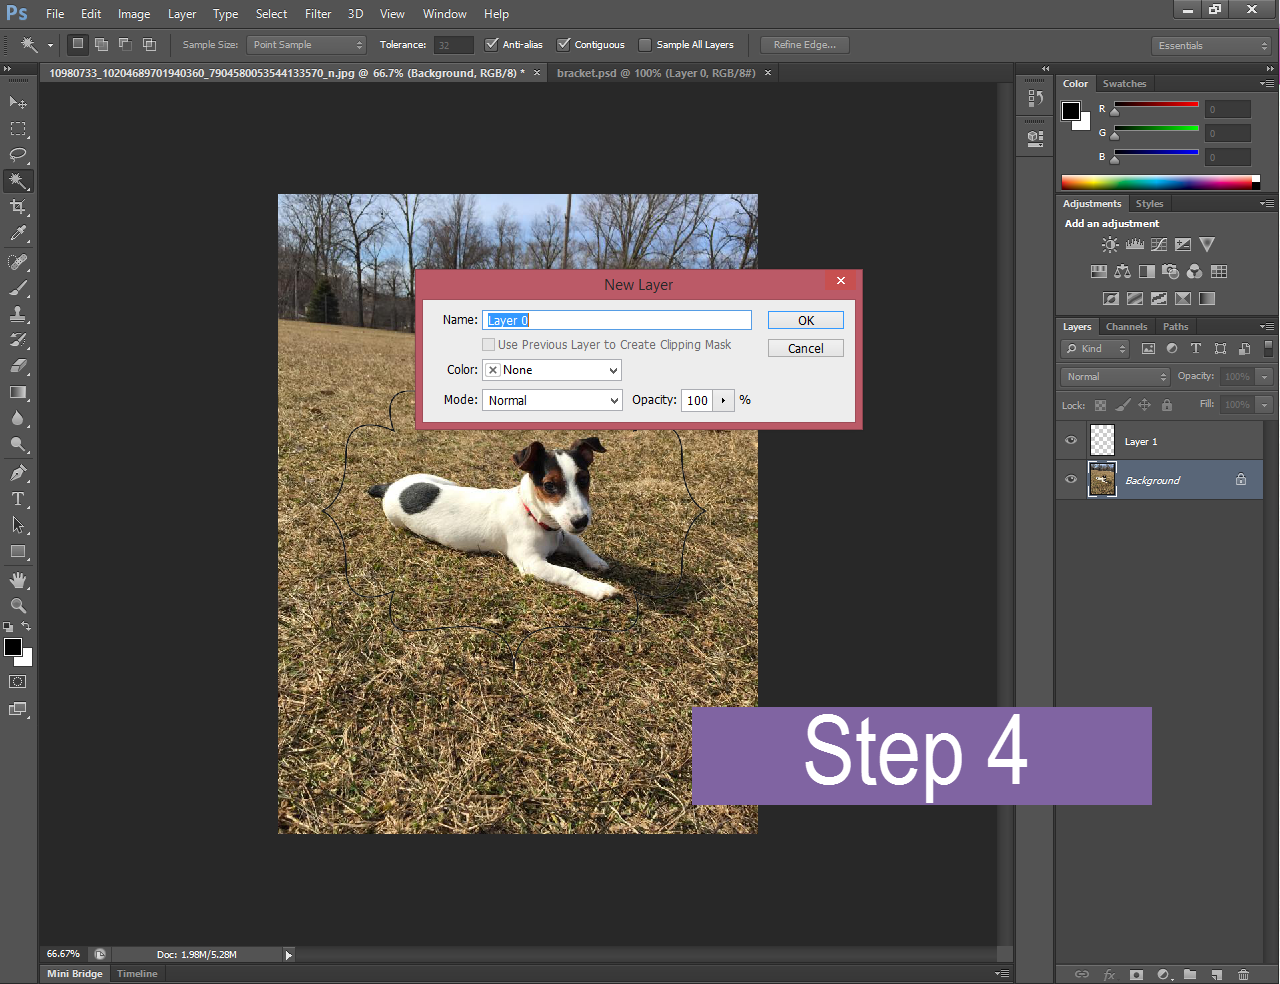 Photoshop with a pop-up window asking what we want to name a layer